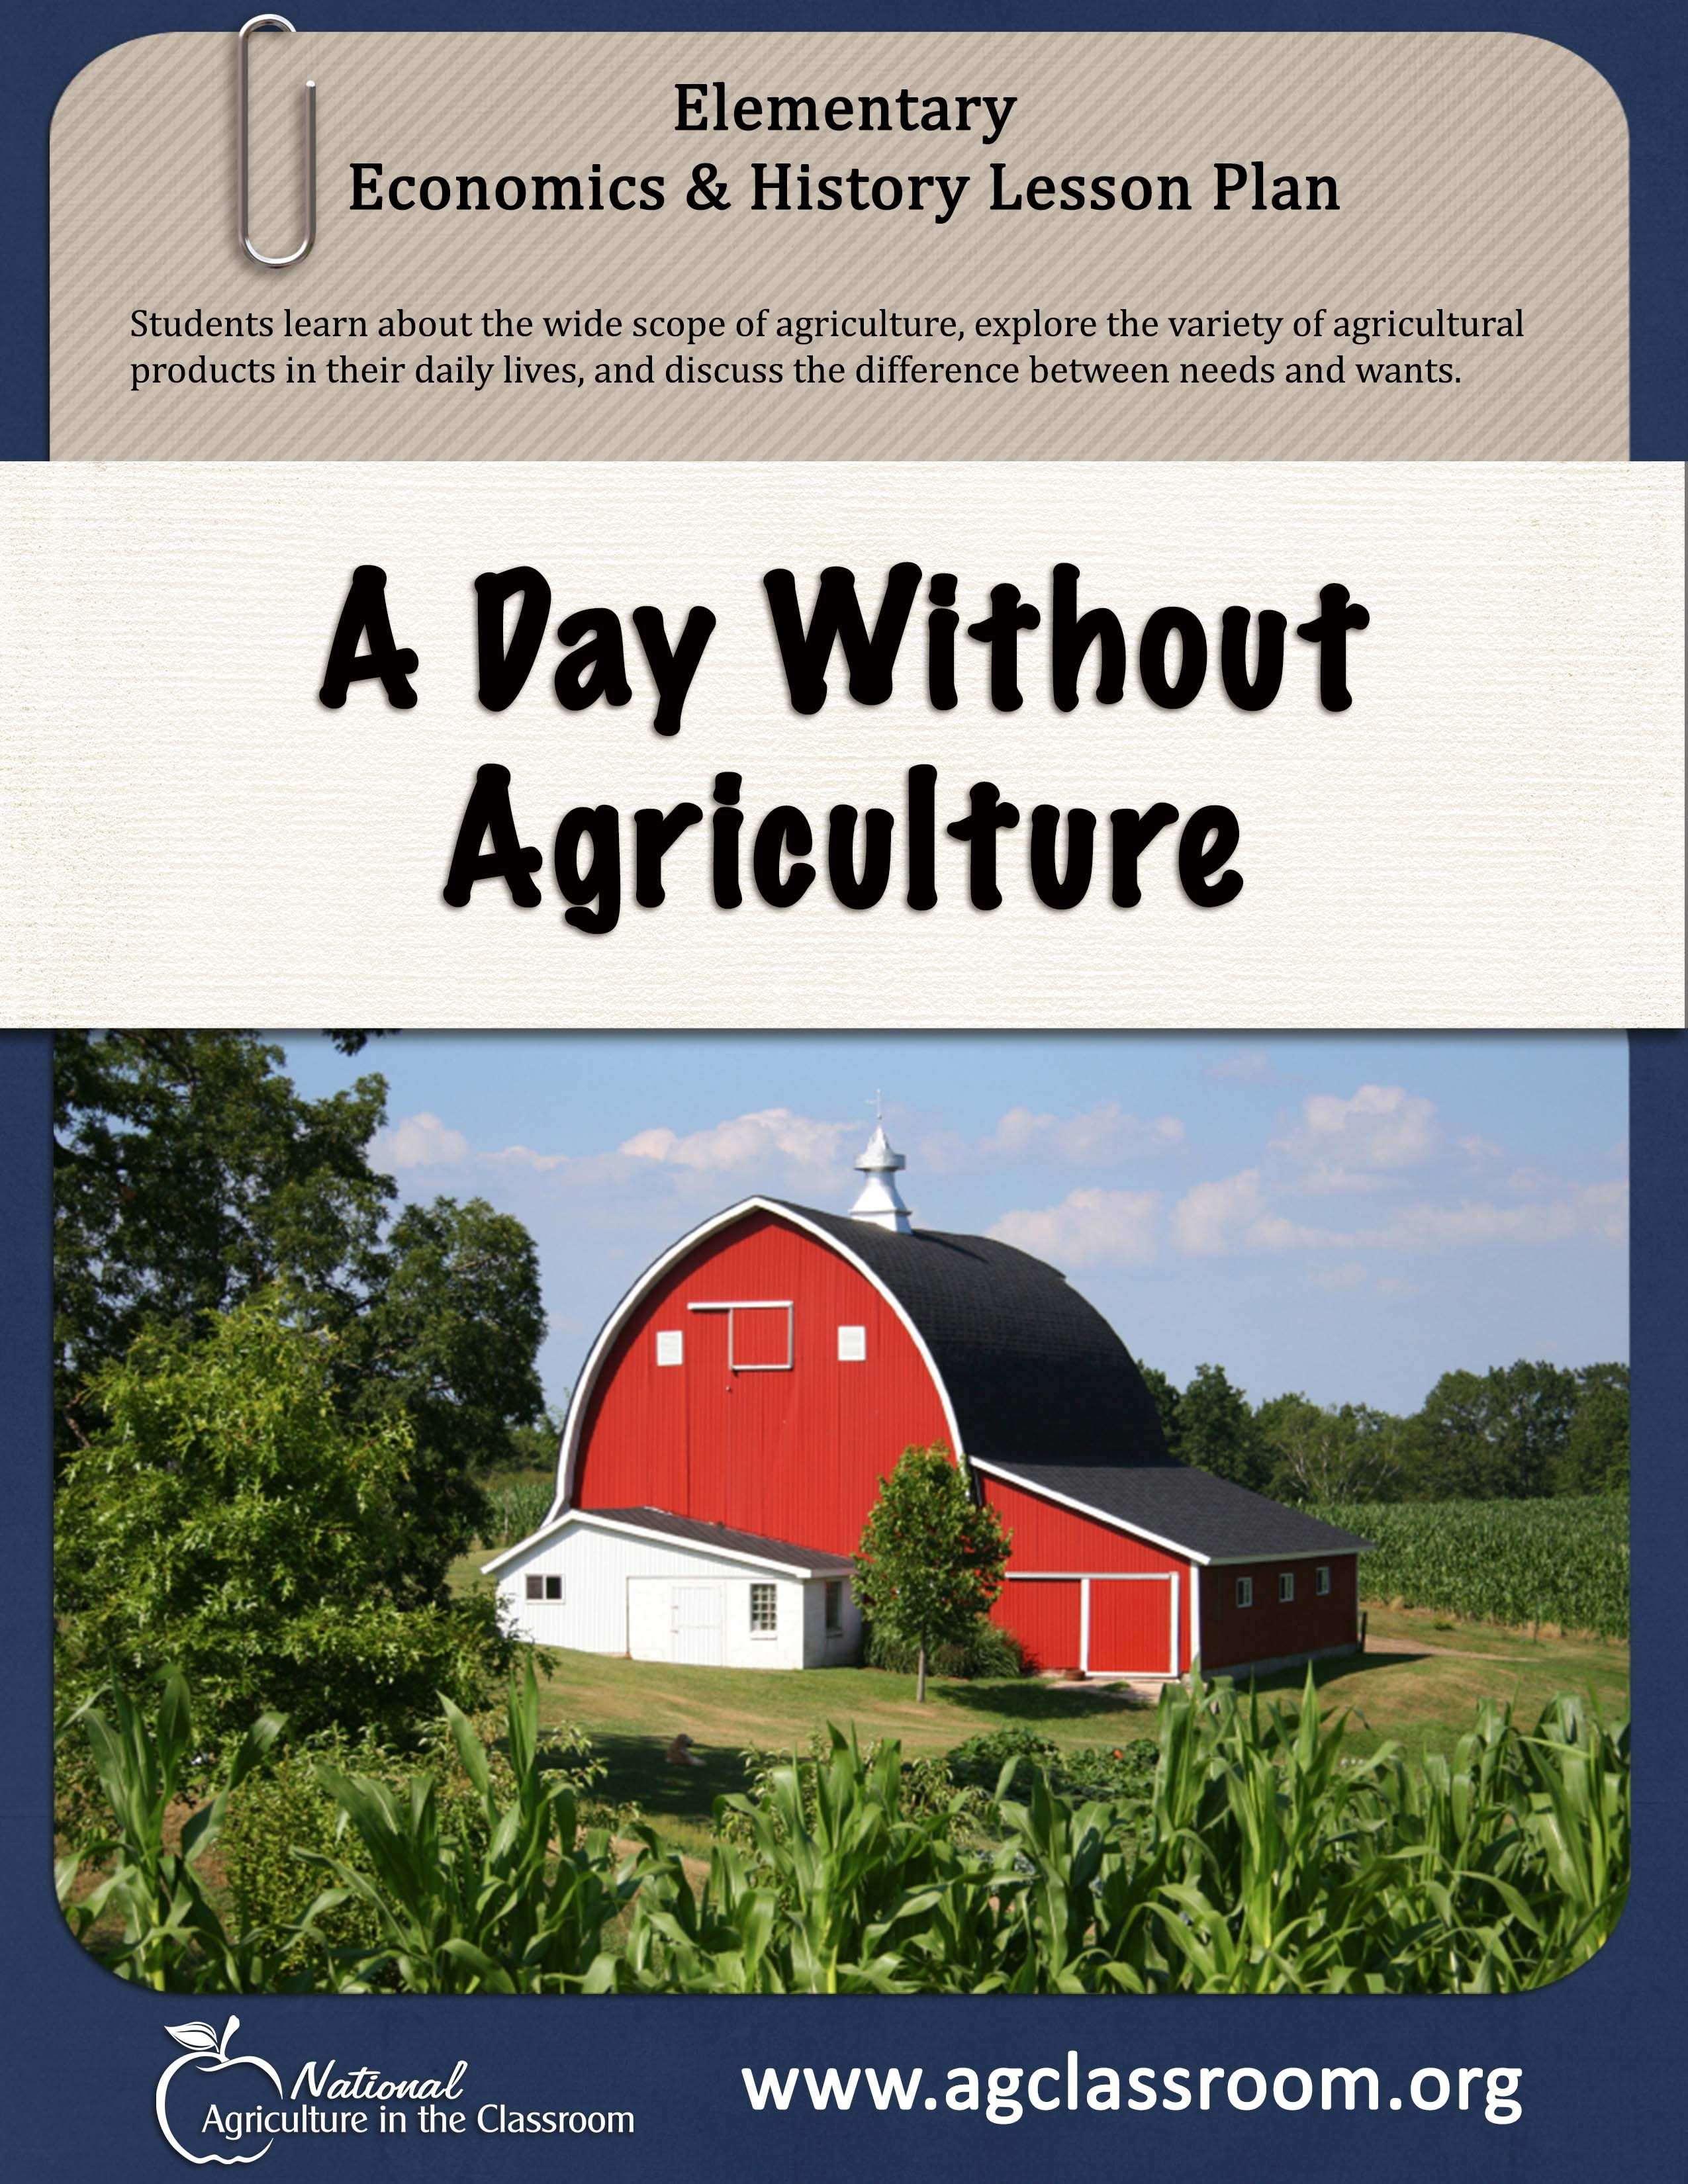 Lesson Plan And Activity Sheet Students Learn How Agriculture Impacts Their Daily Lives